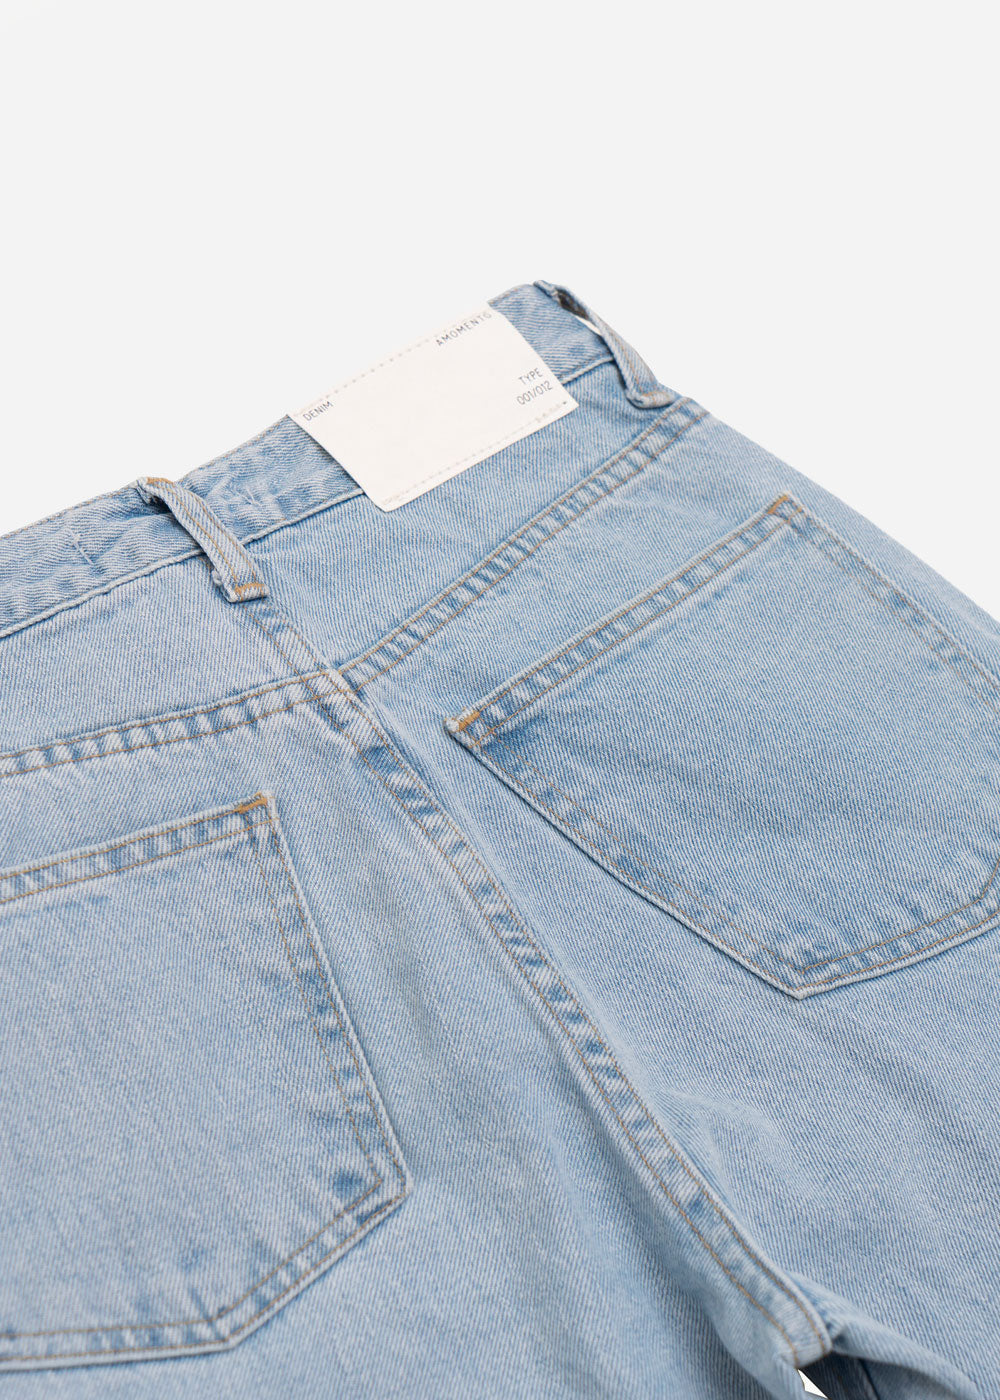 AMOMENTO Regular Fit Denim Jeans — Shop sustainable fashion and slow fashion at New Classics Studios